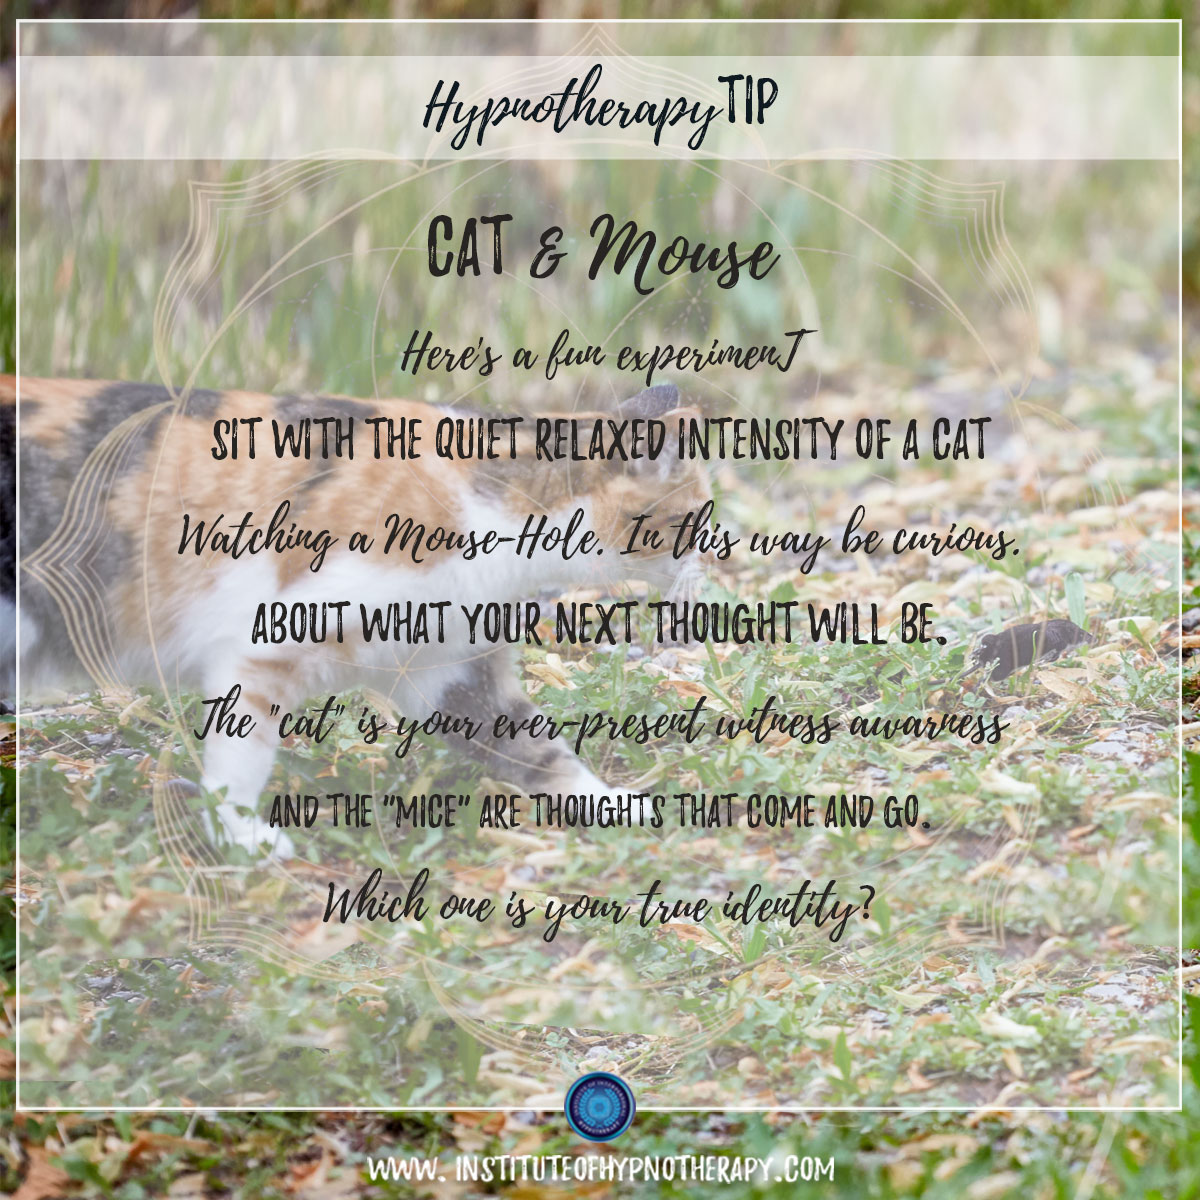 Hypnotherapy Tip : Cat & Mouse